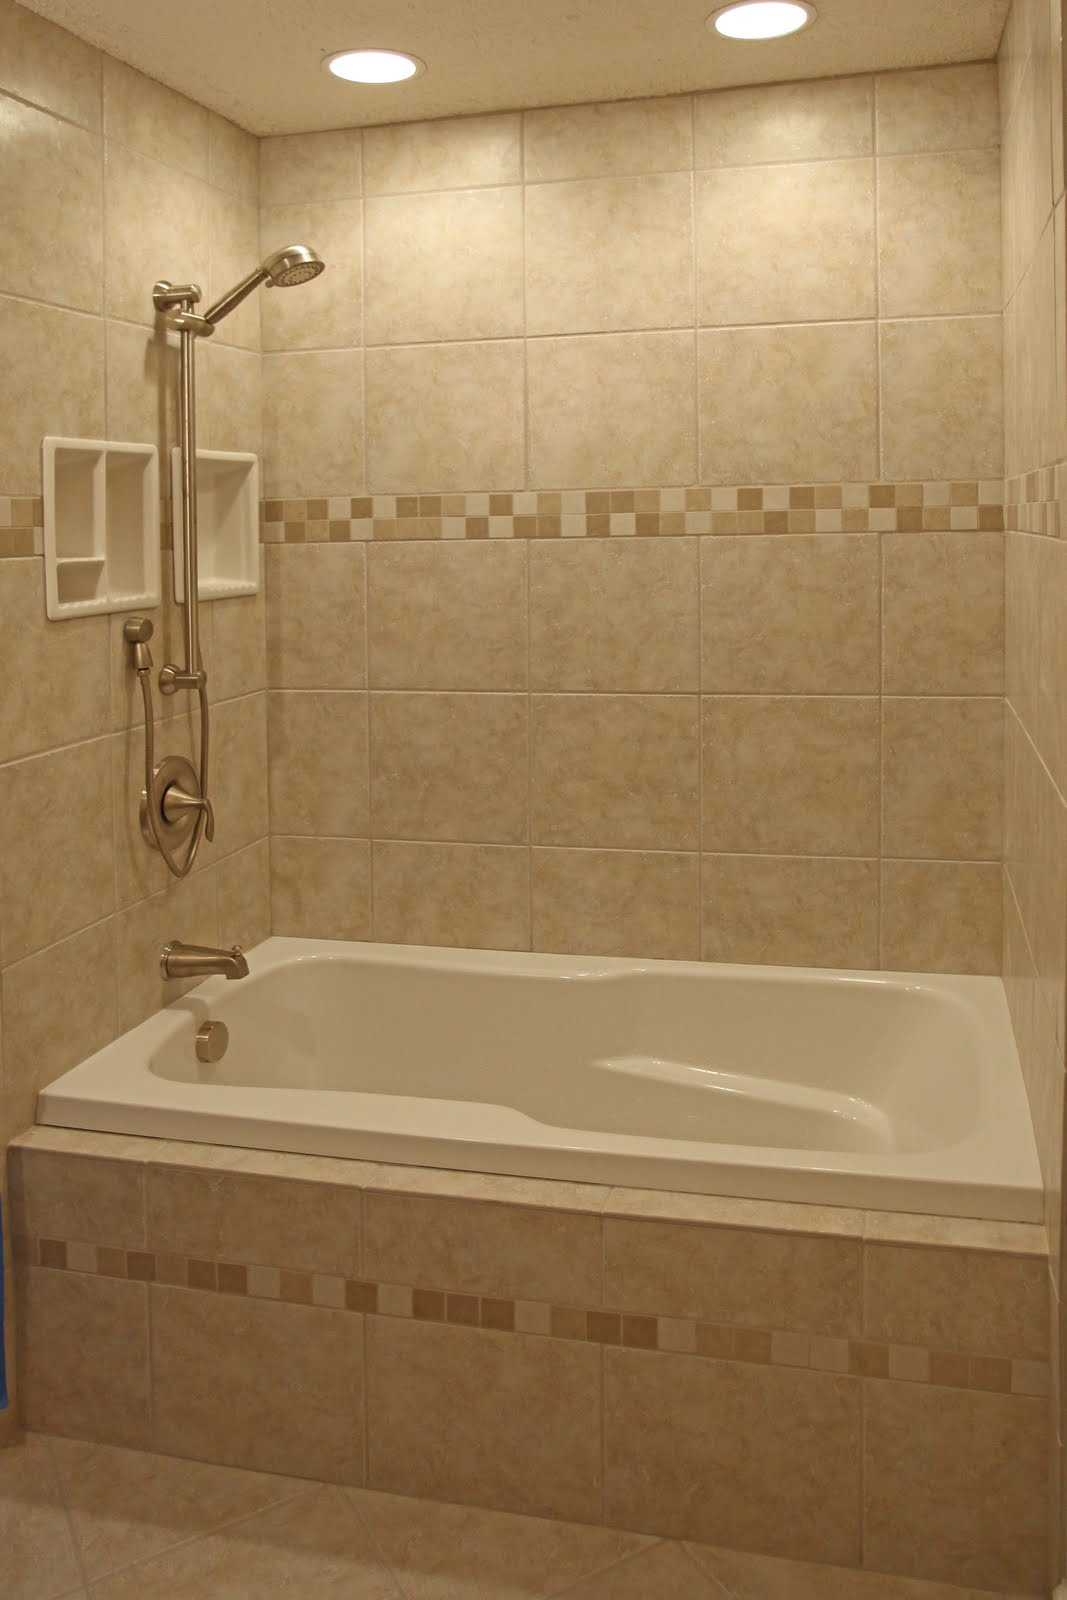 Bathroom Remodeling Design Ideas Tile Shower Niches: small bathroom remodel tile